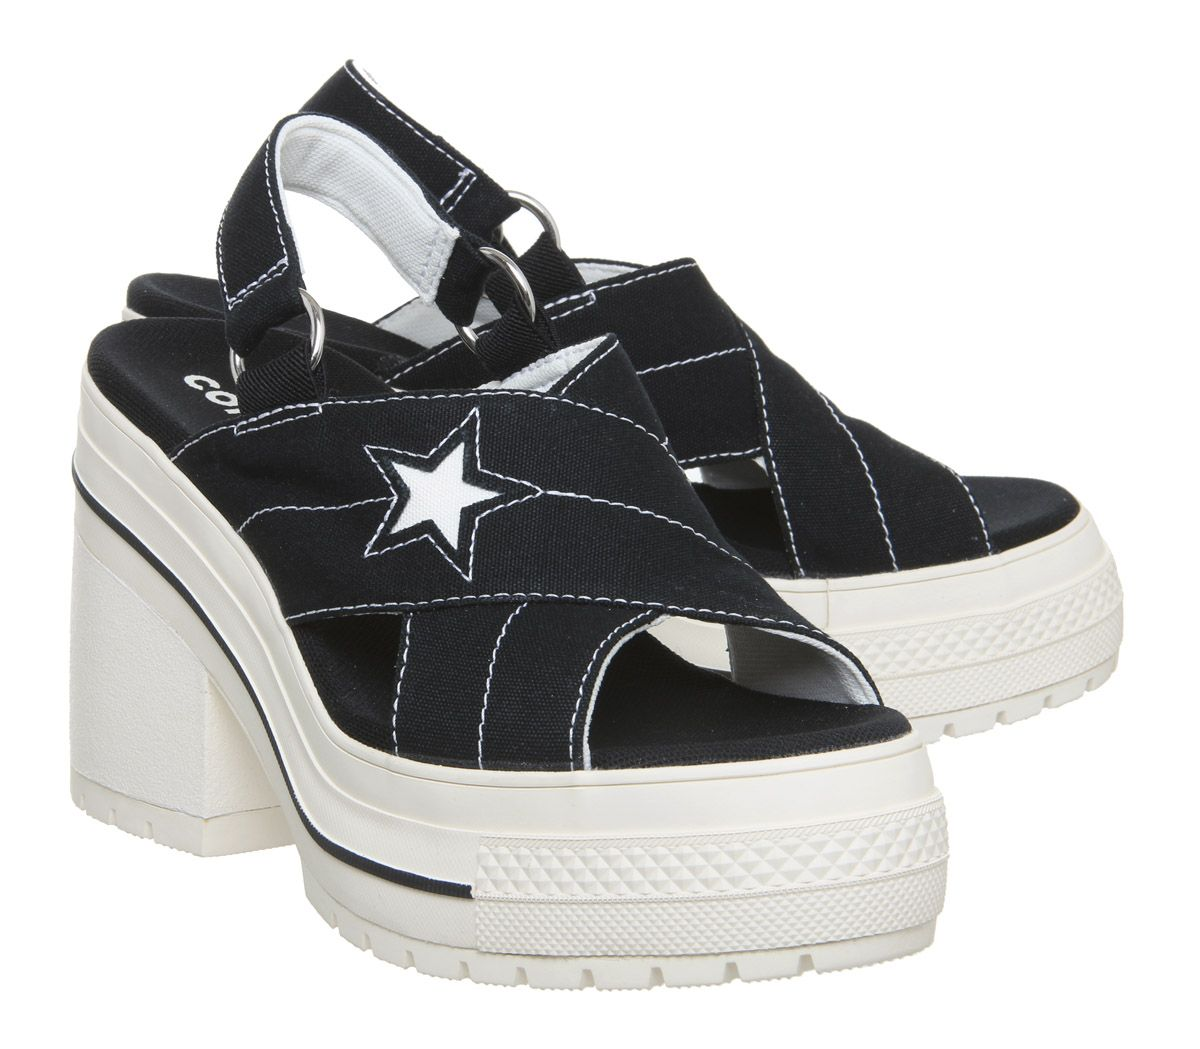 Womens-Converse-One-Star-Heels-Black-Egret-Trainers-Shoes thumbnail 6